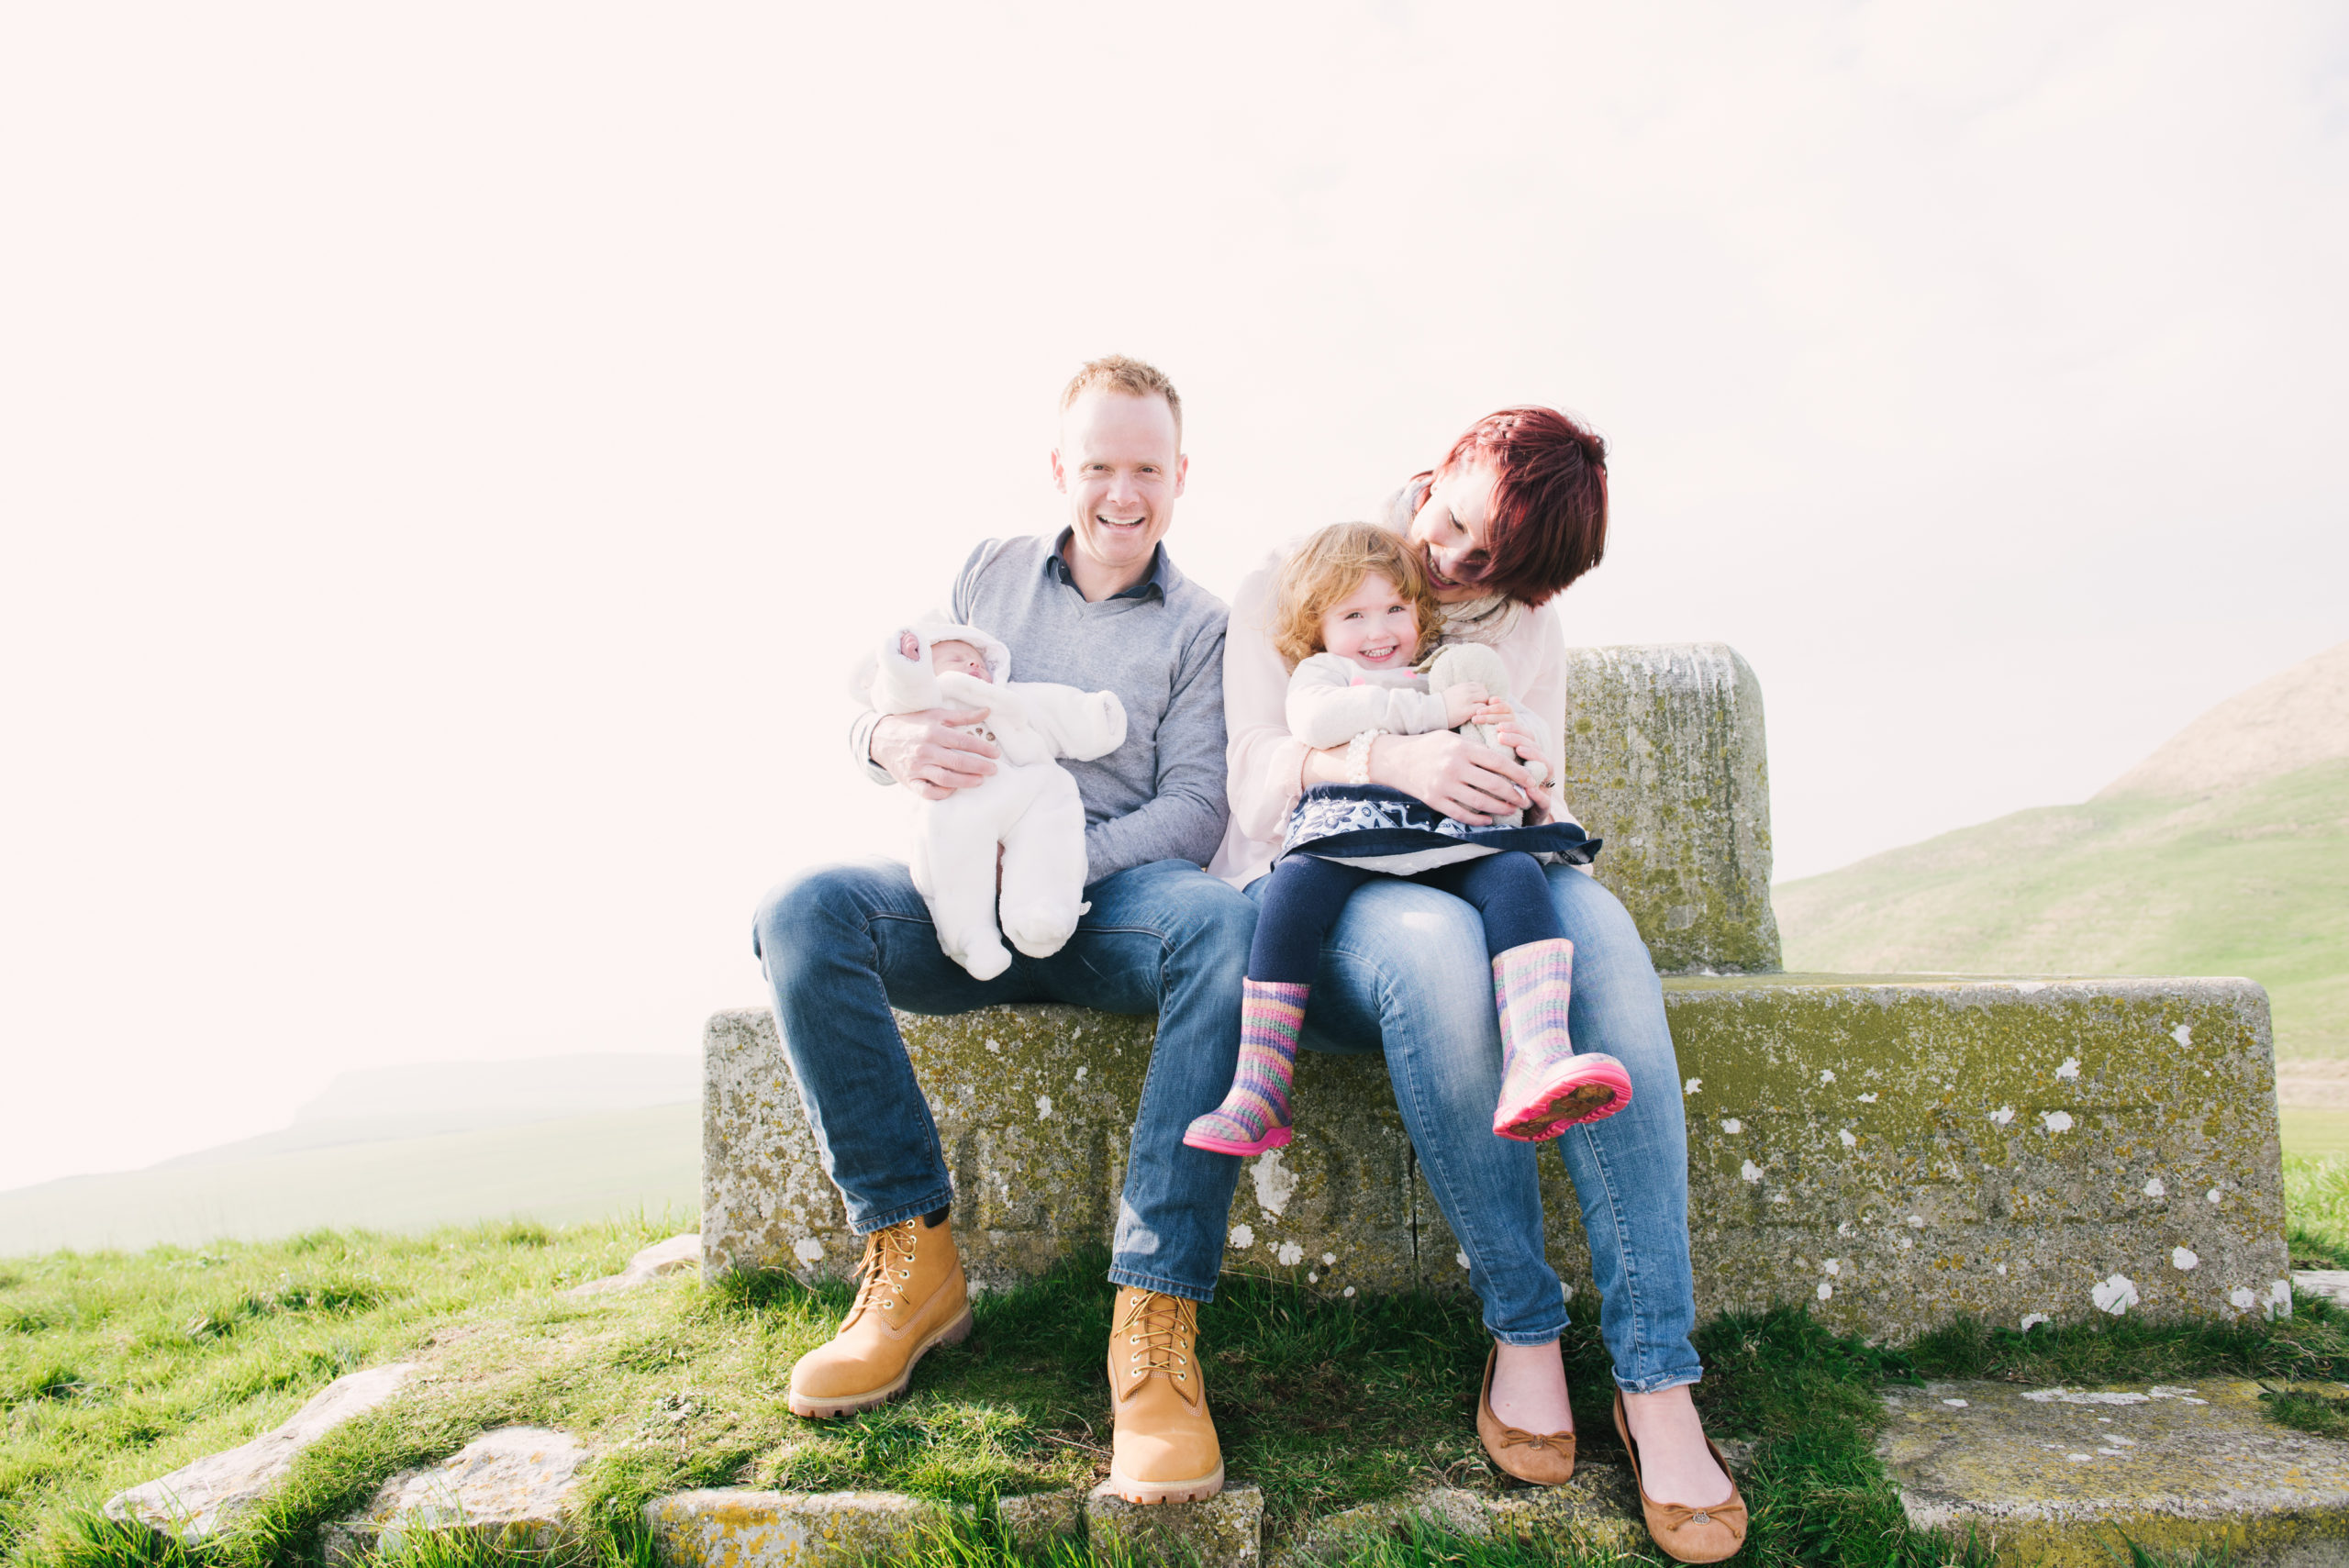 adobe lightroom course, image of family sitting on monument on hill